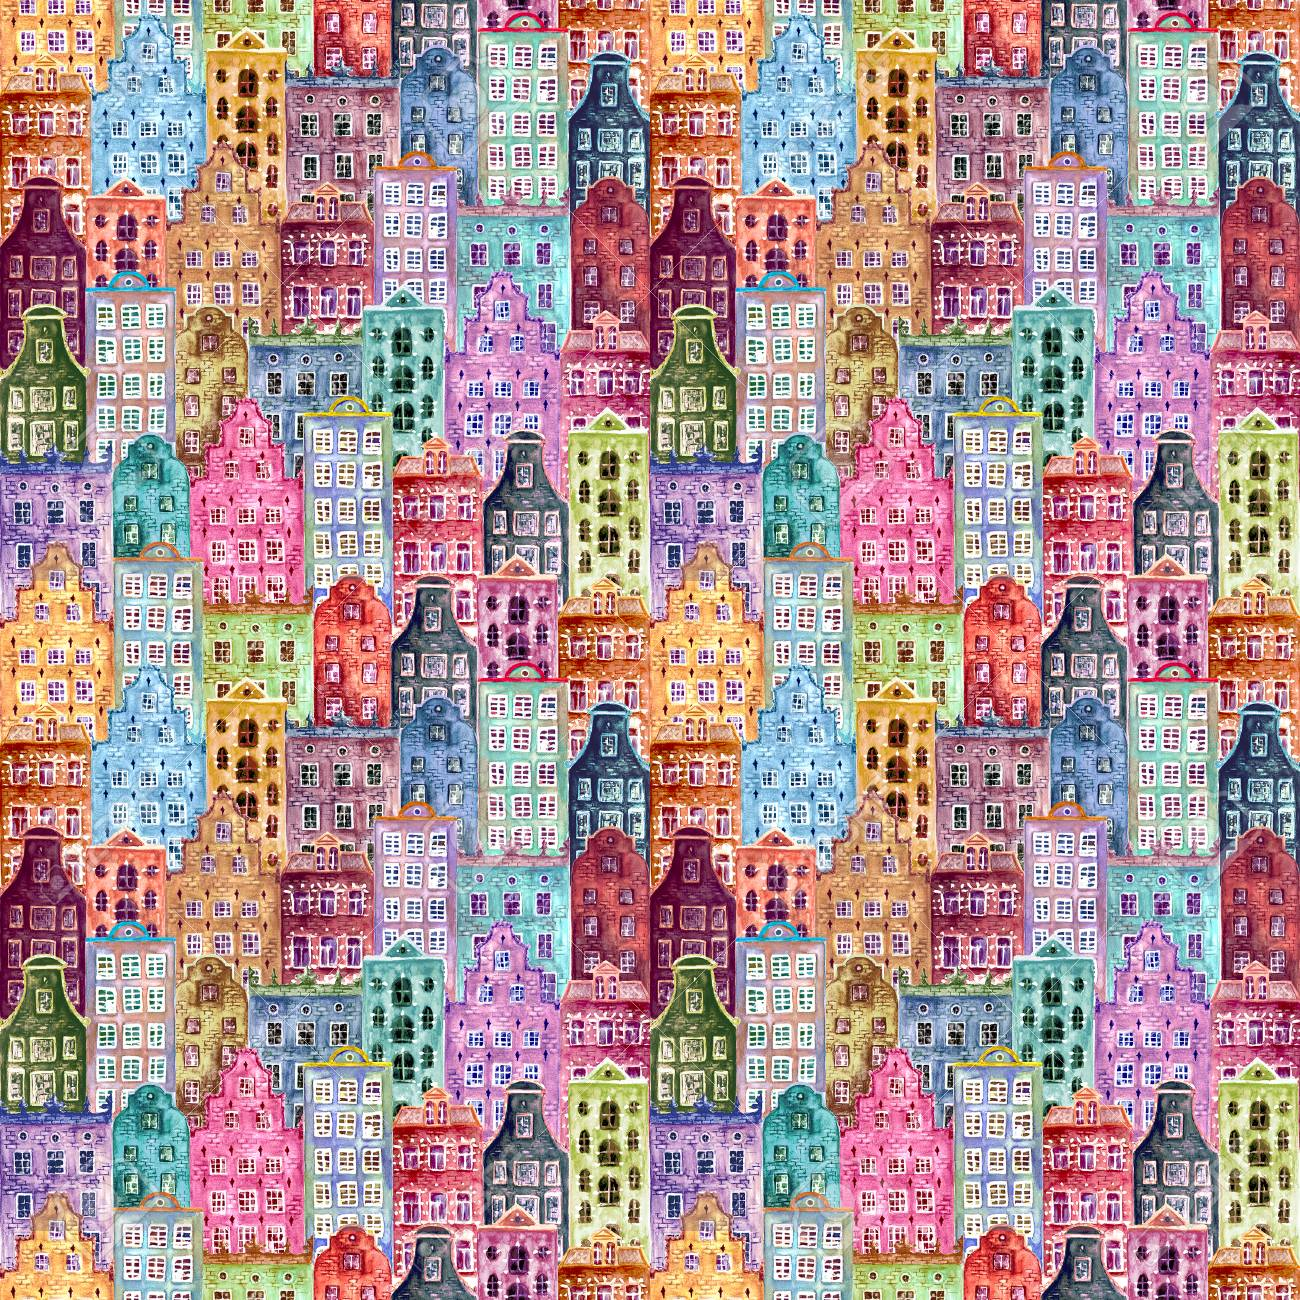 Old europe houses. Seamless pattern of watercolour colorful european amsterdam style houses. Watercolor hand drawn Netherlands stylized facades of old buildings background. Template illustration. - 105706182